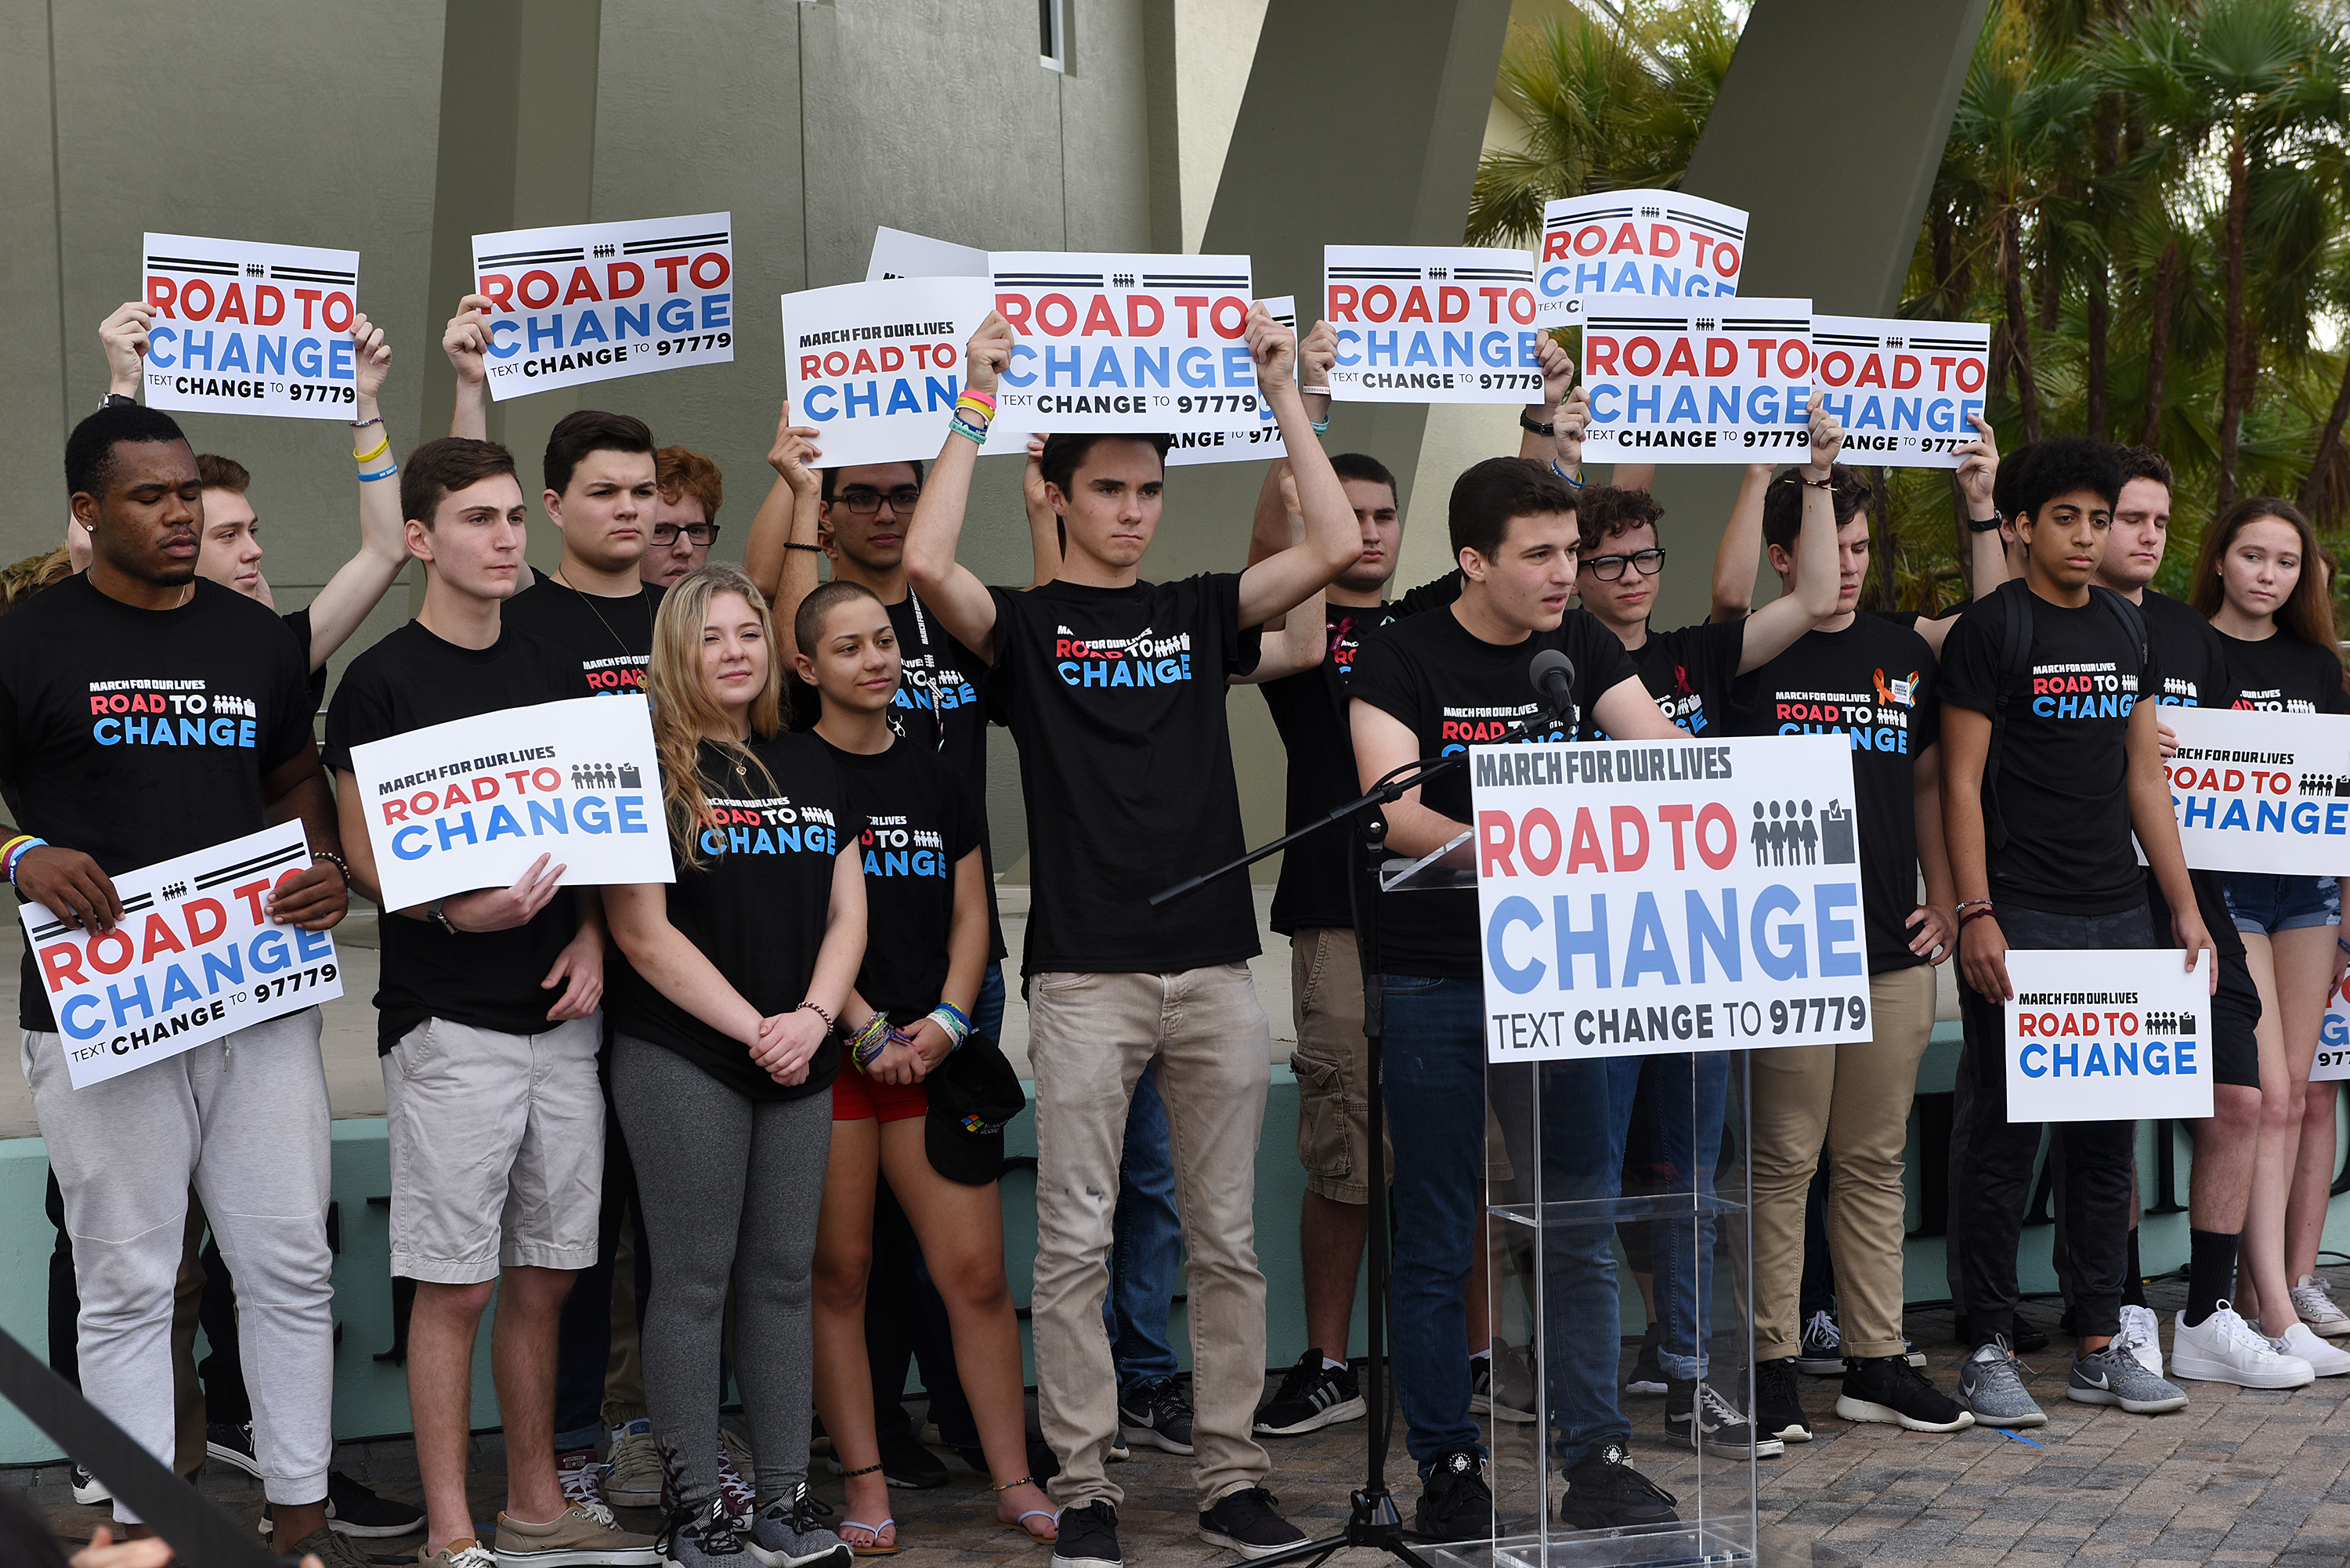 Marjory Stoneman Douglas students hold a press conference on June 4, 2018 in Parkland, Fla. to announce that the students of March For Our Lives would make stops across America to get young people educated, registered and motivated to vote.